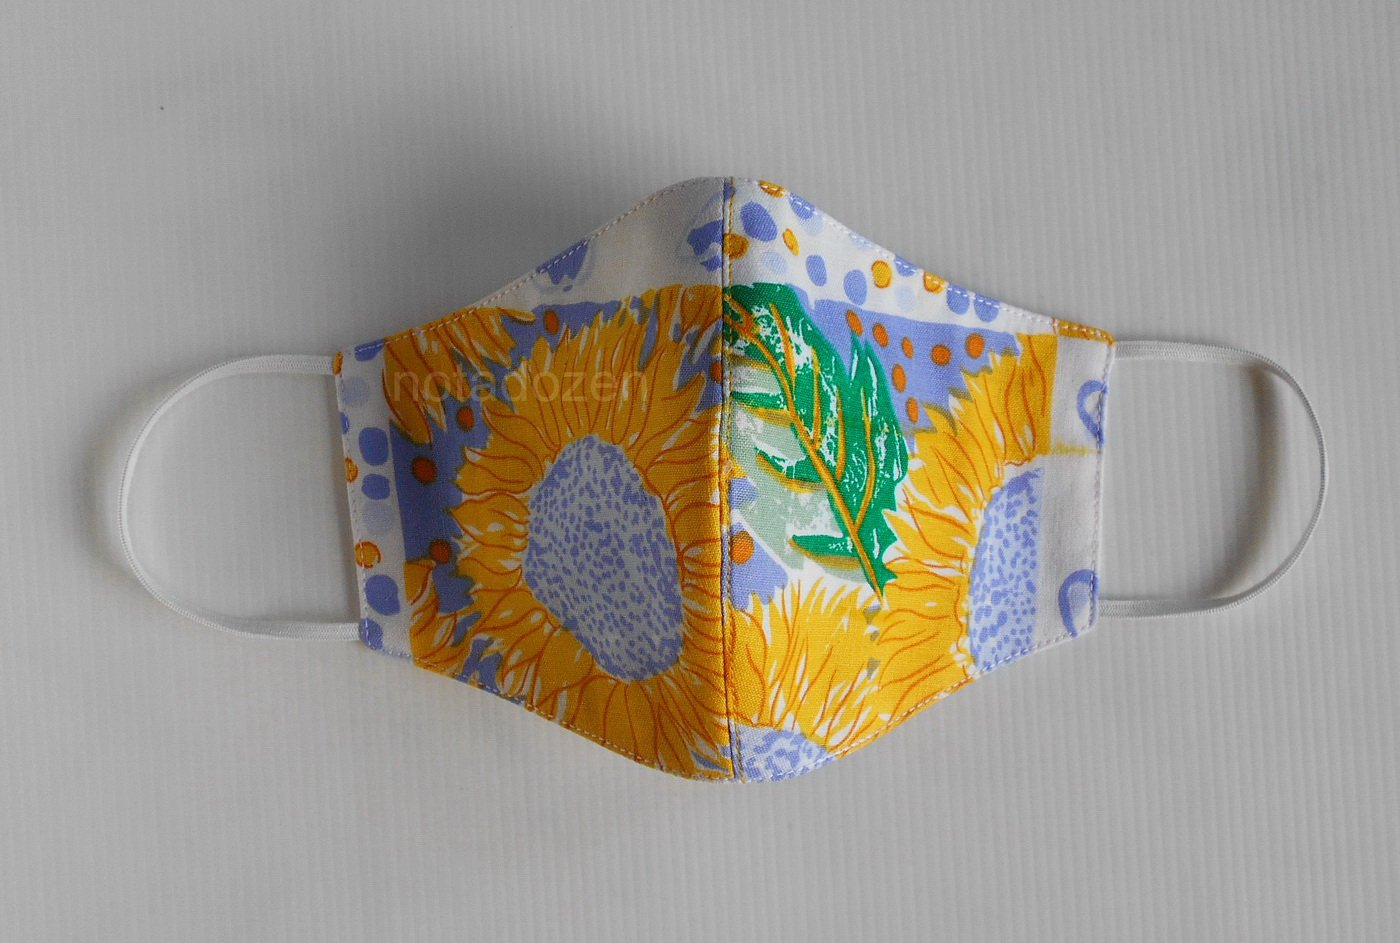 Handmade 3D Face Mask- Washable and Reusable with filter pocket and nose wire/bright sunflower(#2)